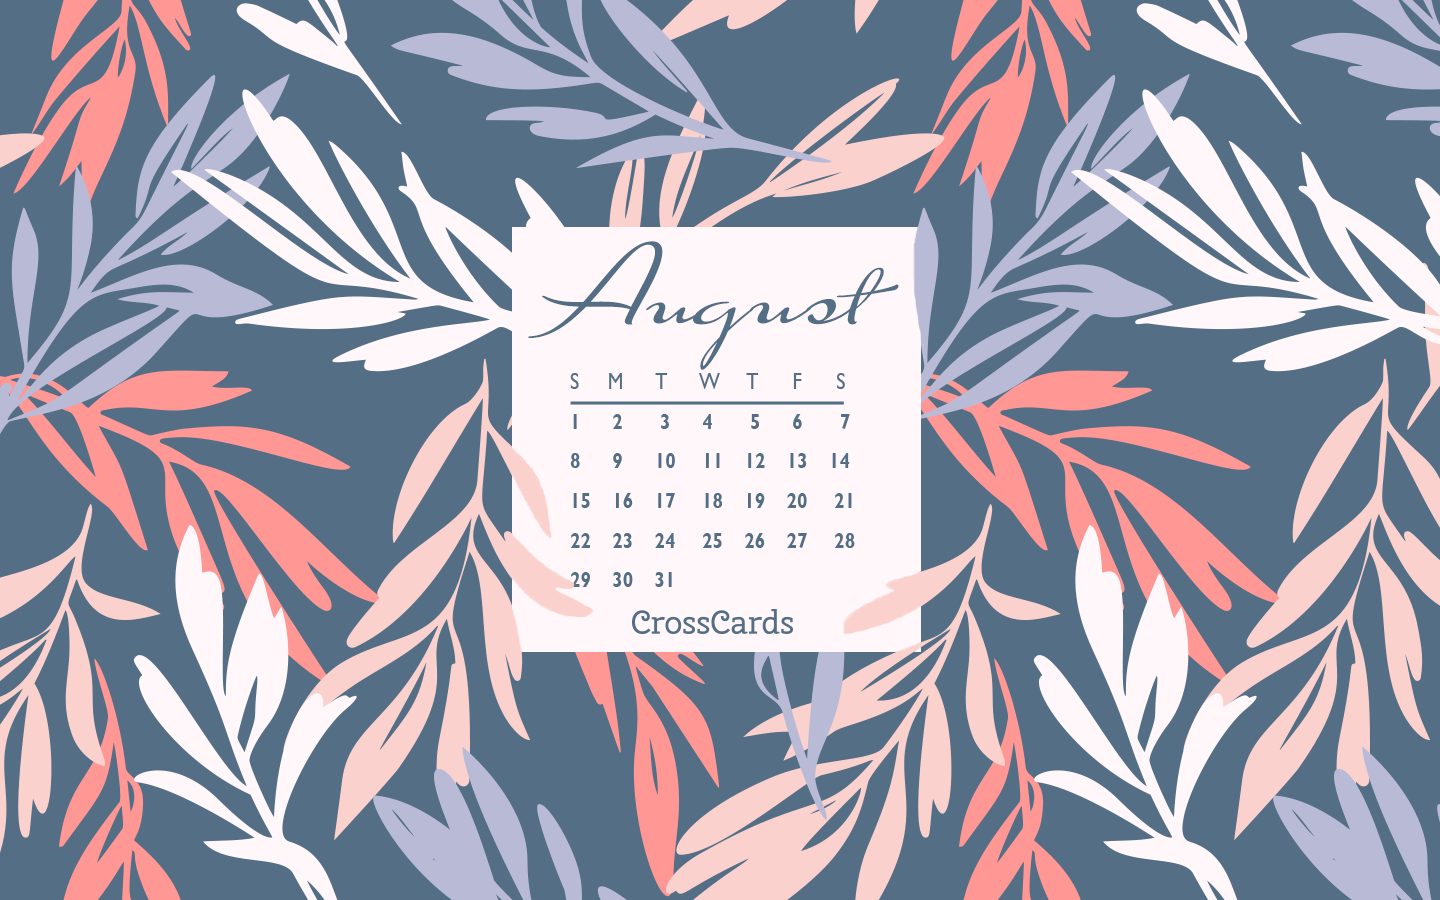 August 2021 - Floral mobile phone wallpaper